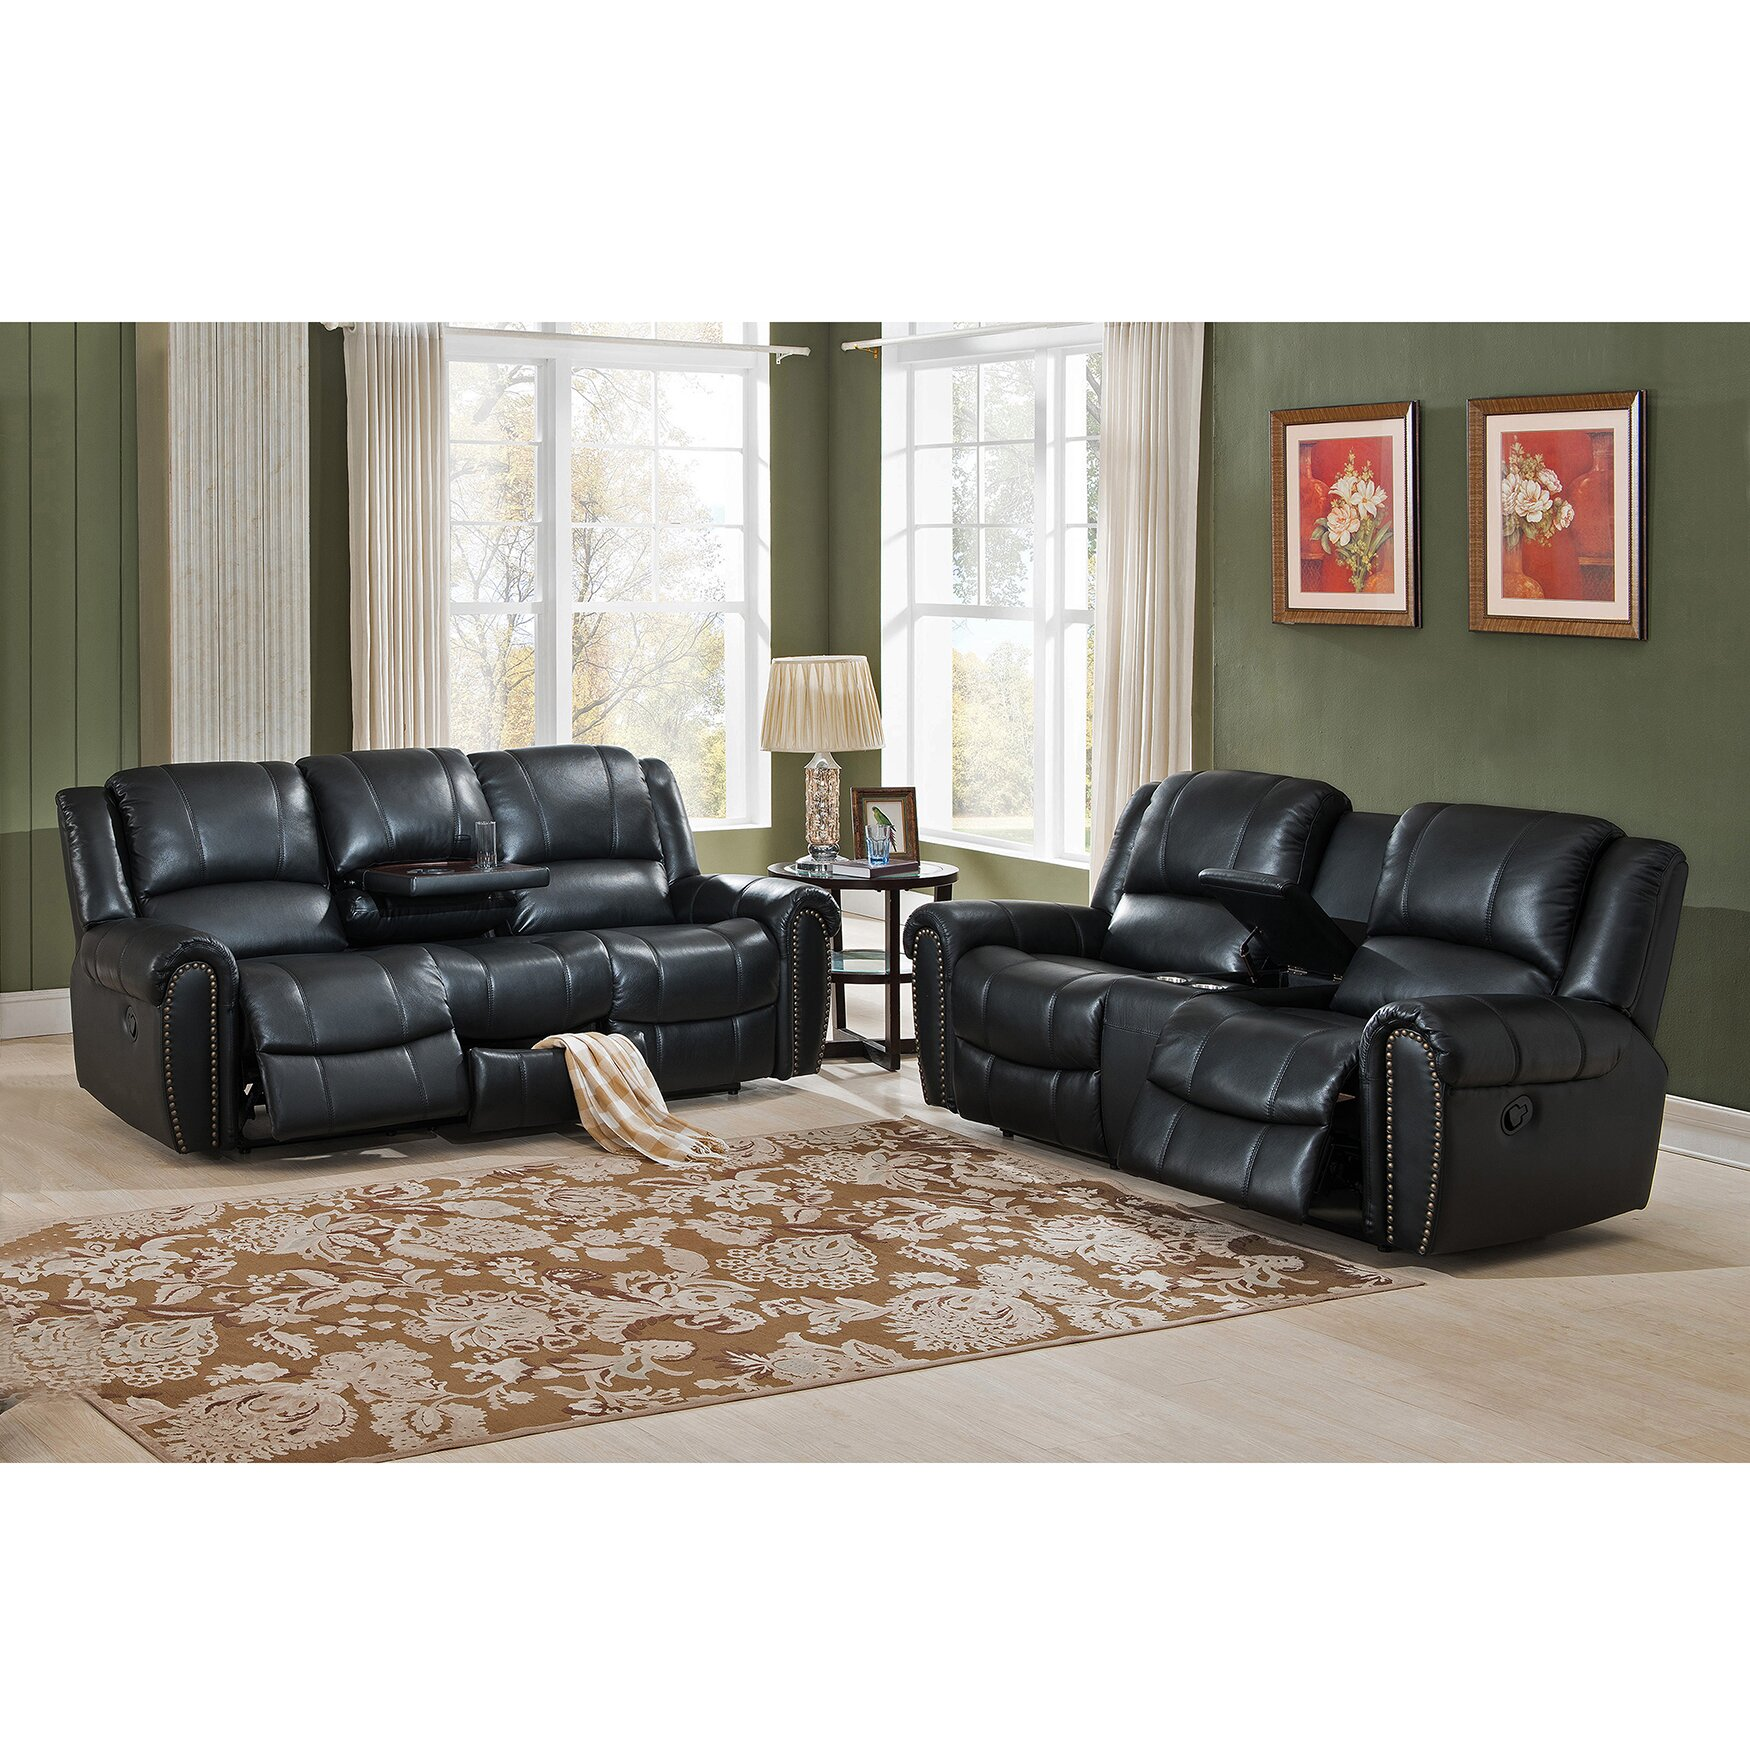 Furniture living room furniture living room sets amax sku